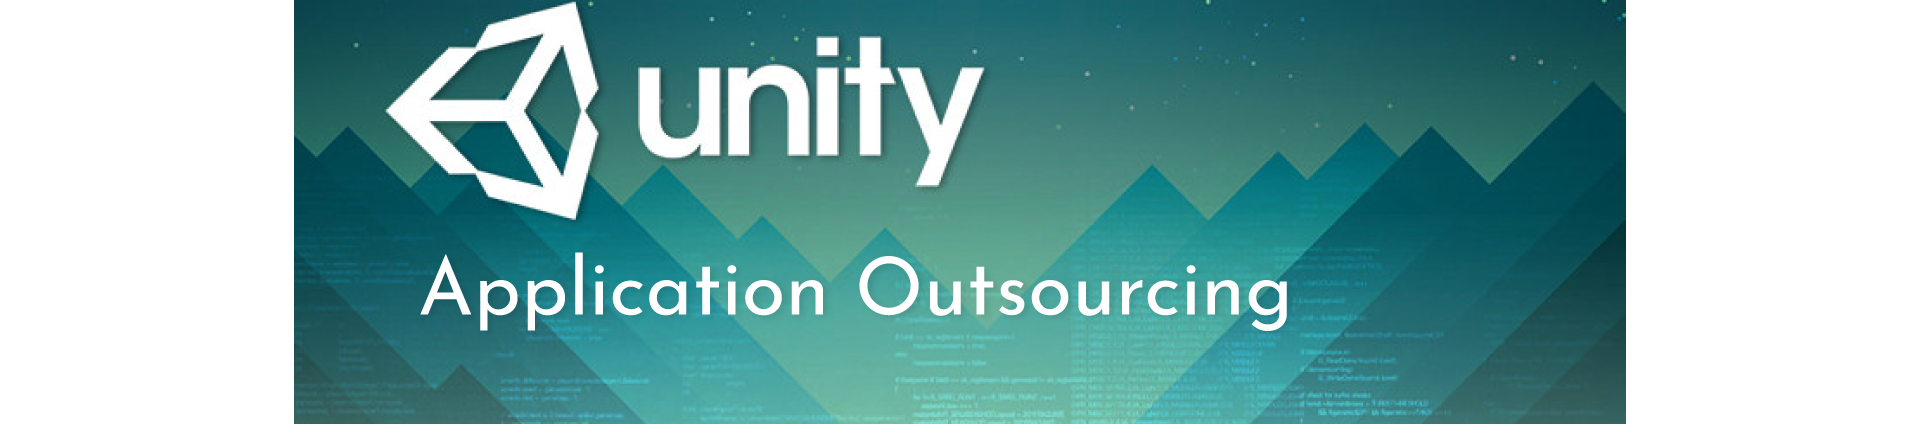 Unity Application Outsourcing